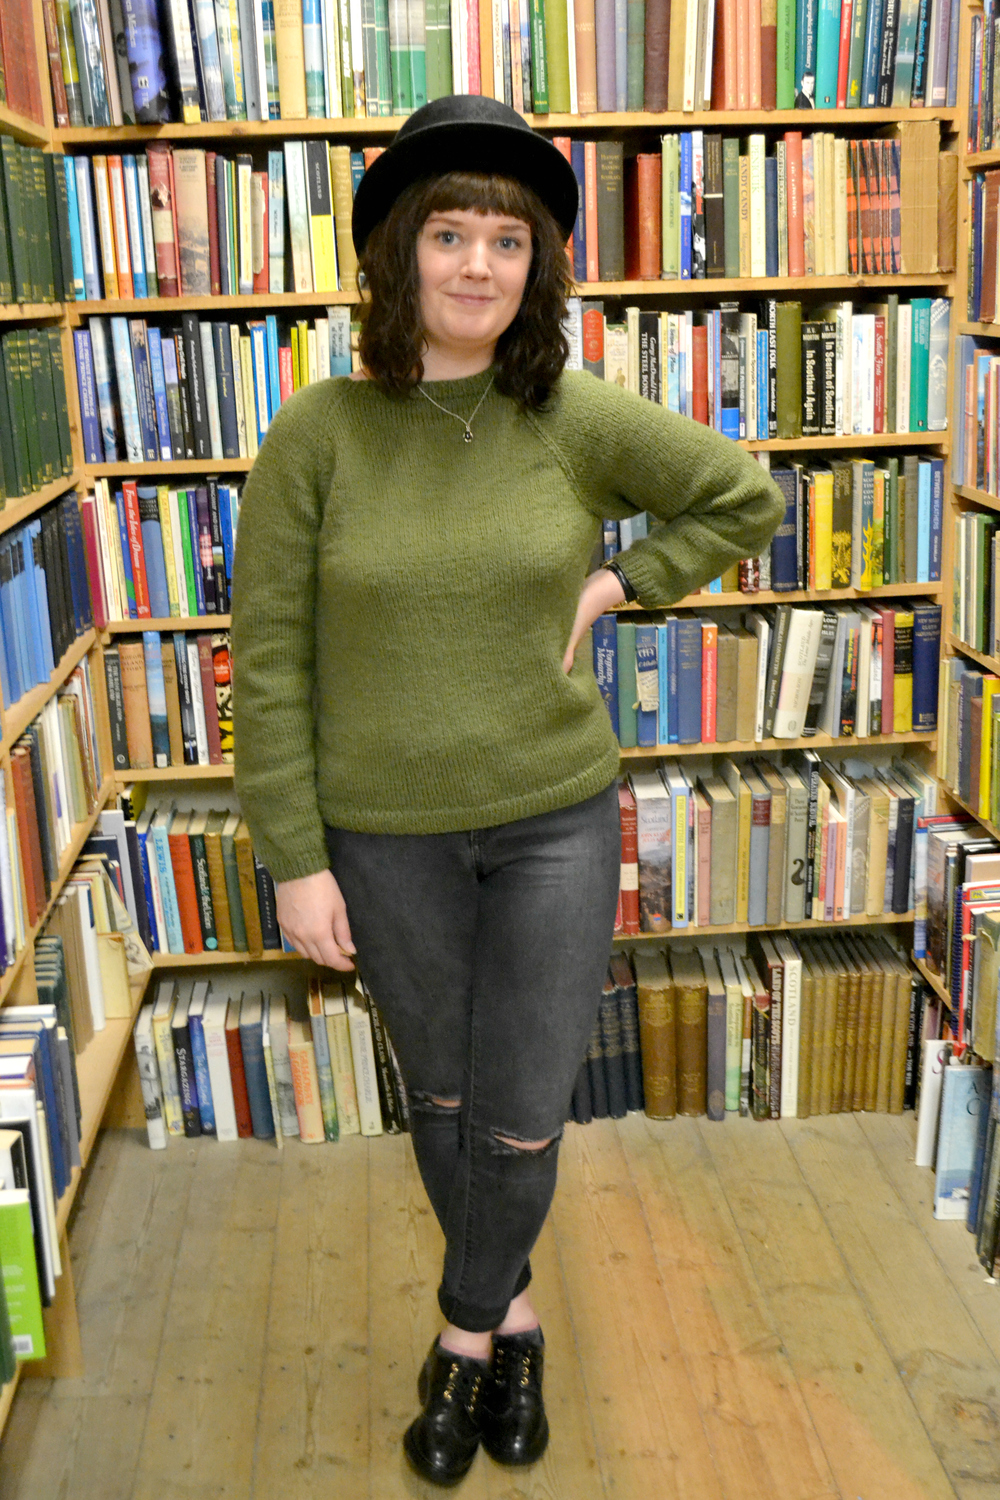 Hat - Vintage / Jumper - Knitted by my Granny! / Jeans - New Look / Brogues - TK Maxx